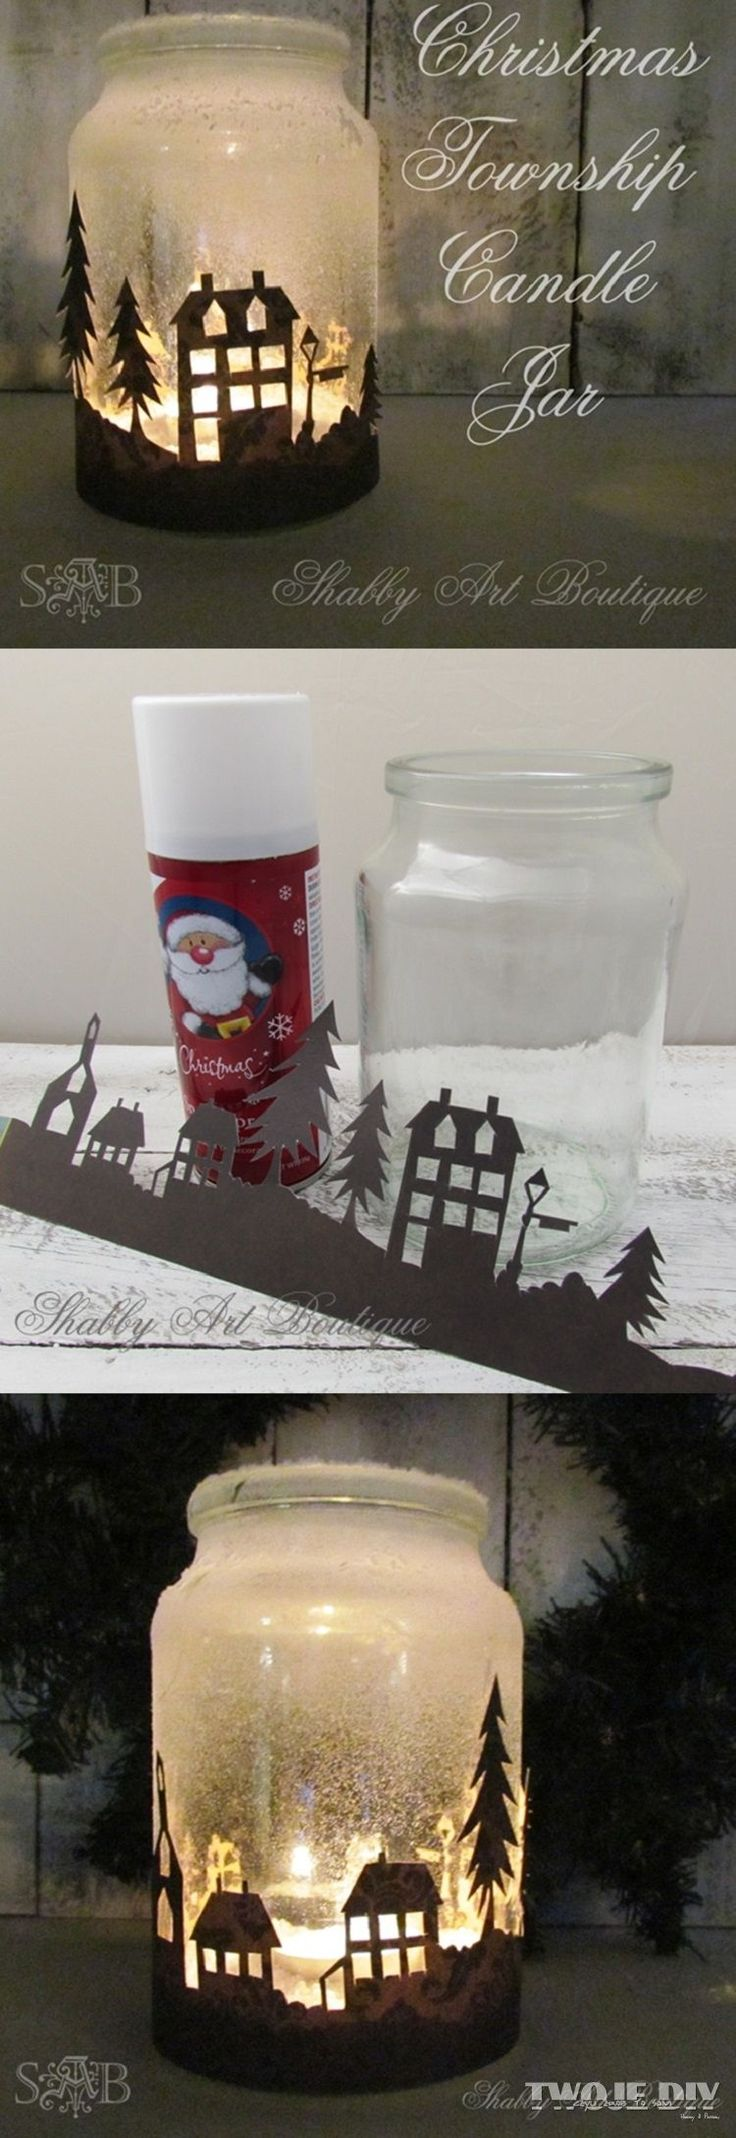 Christmas Township Candle Jar: Quick and easy candle jar that will look amazing when illuminated at night. For the instructions click on From shabbyartboutique.com on the right hand side of the page.